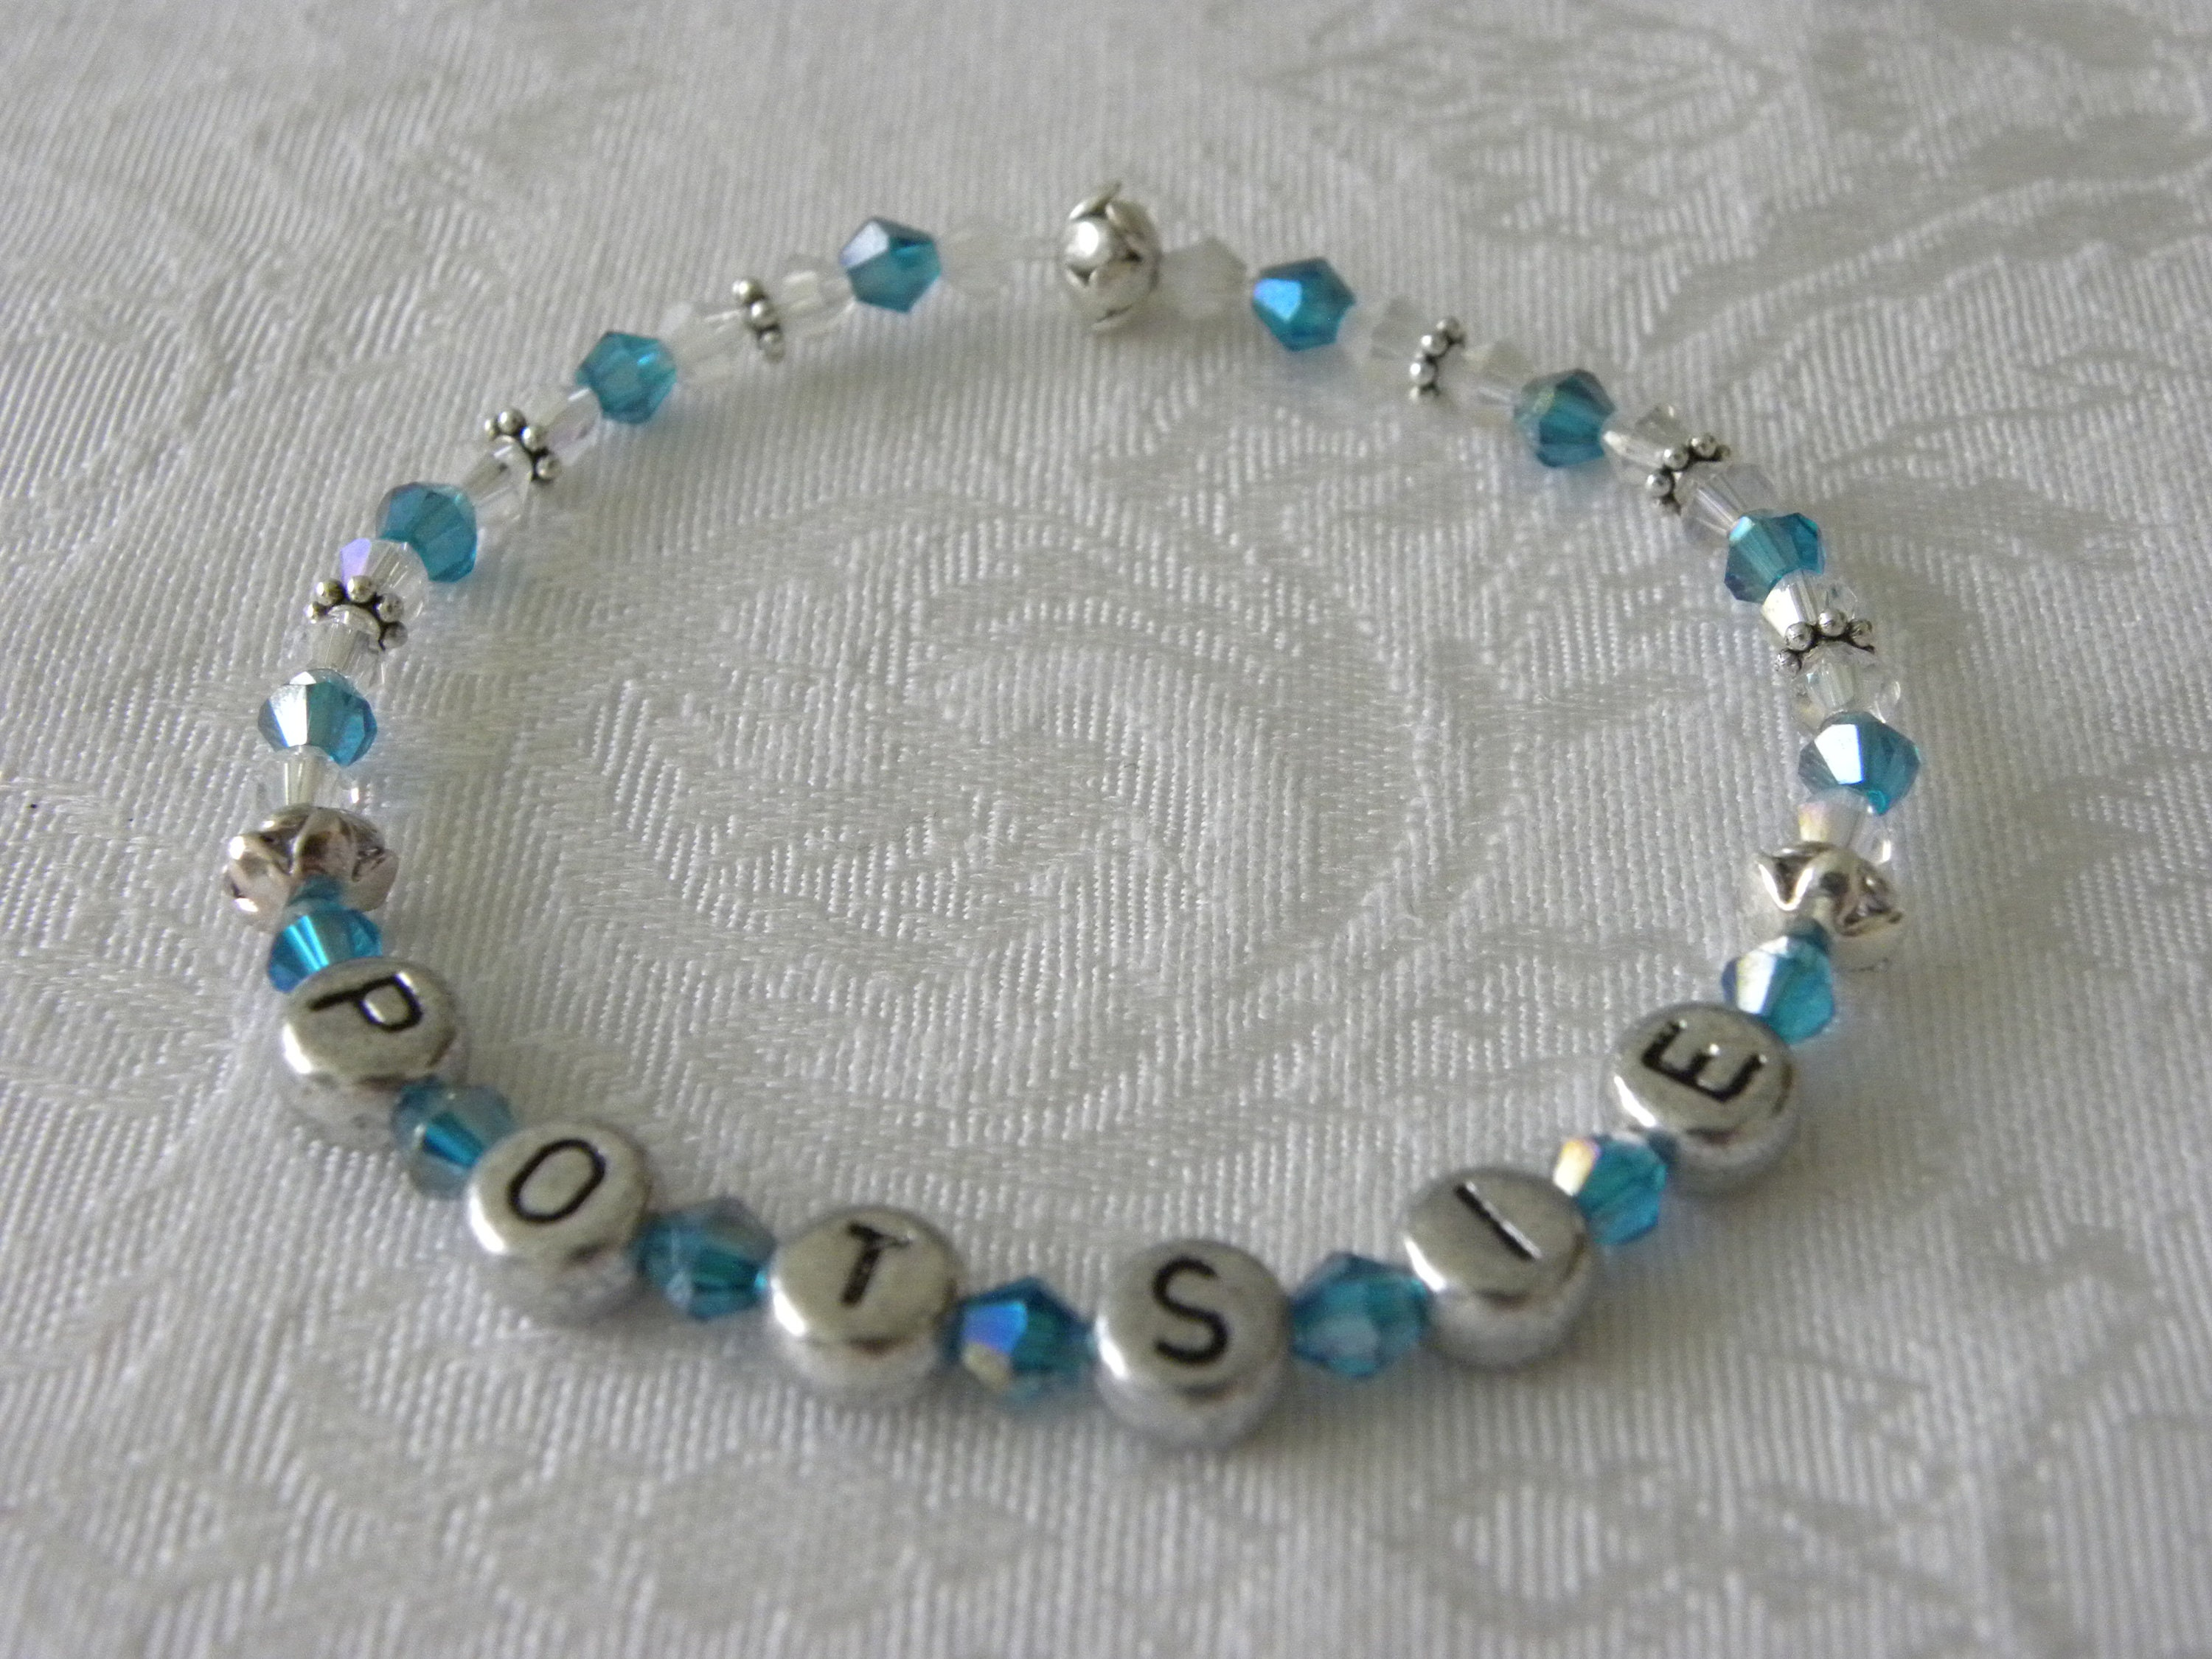 etsy spoonspirations by dysautonomia on hope shop chronic fullxfull isla bracelet illness